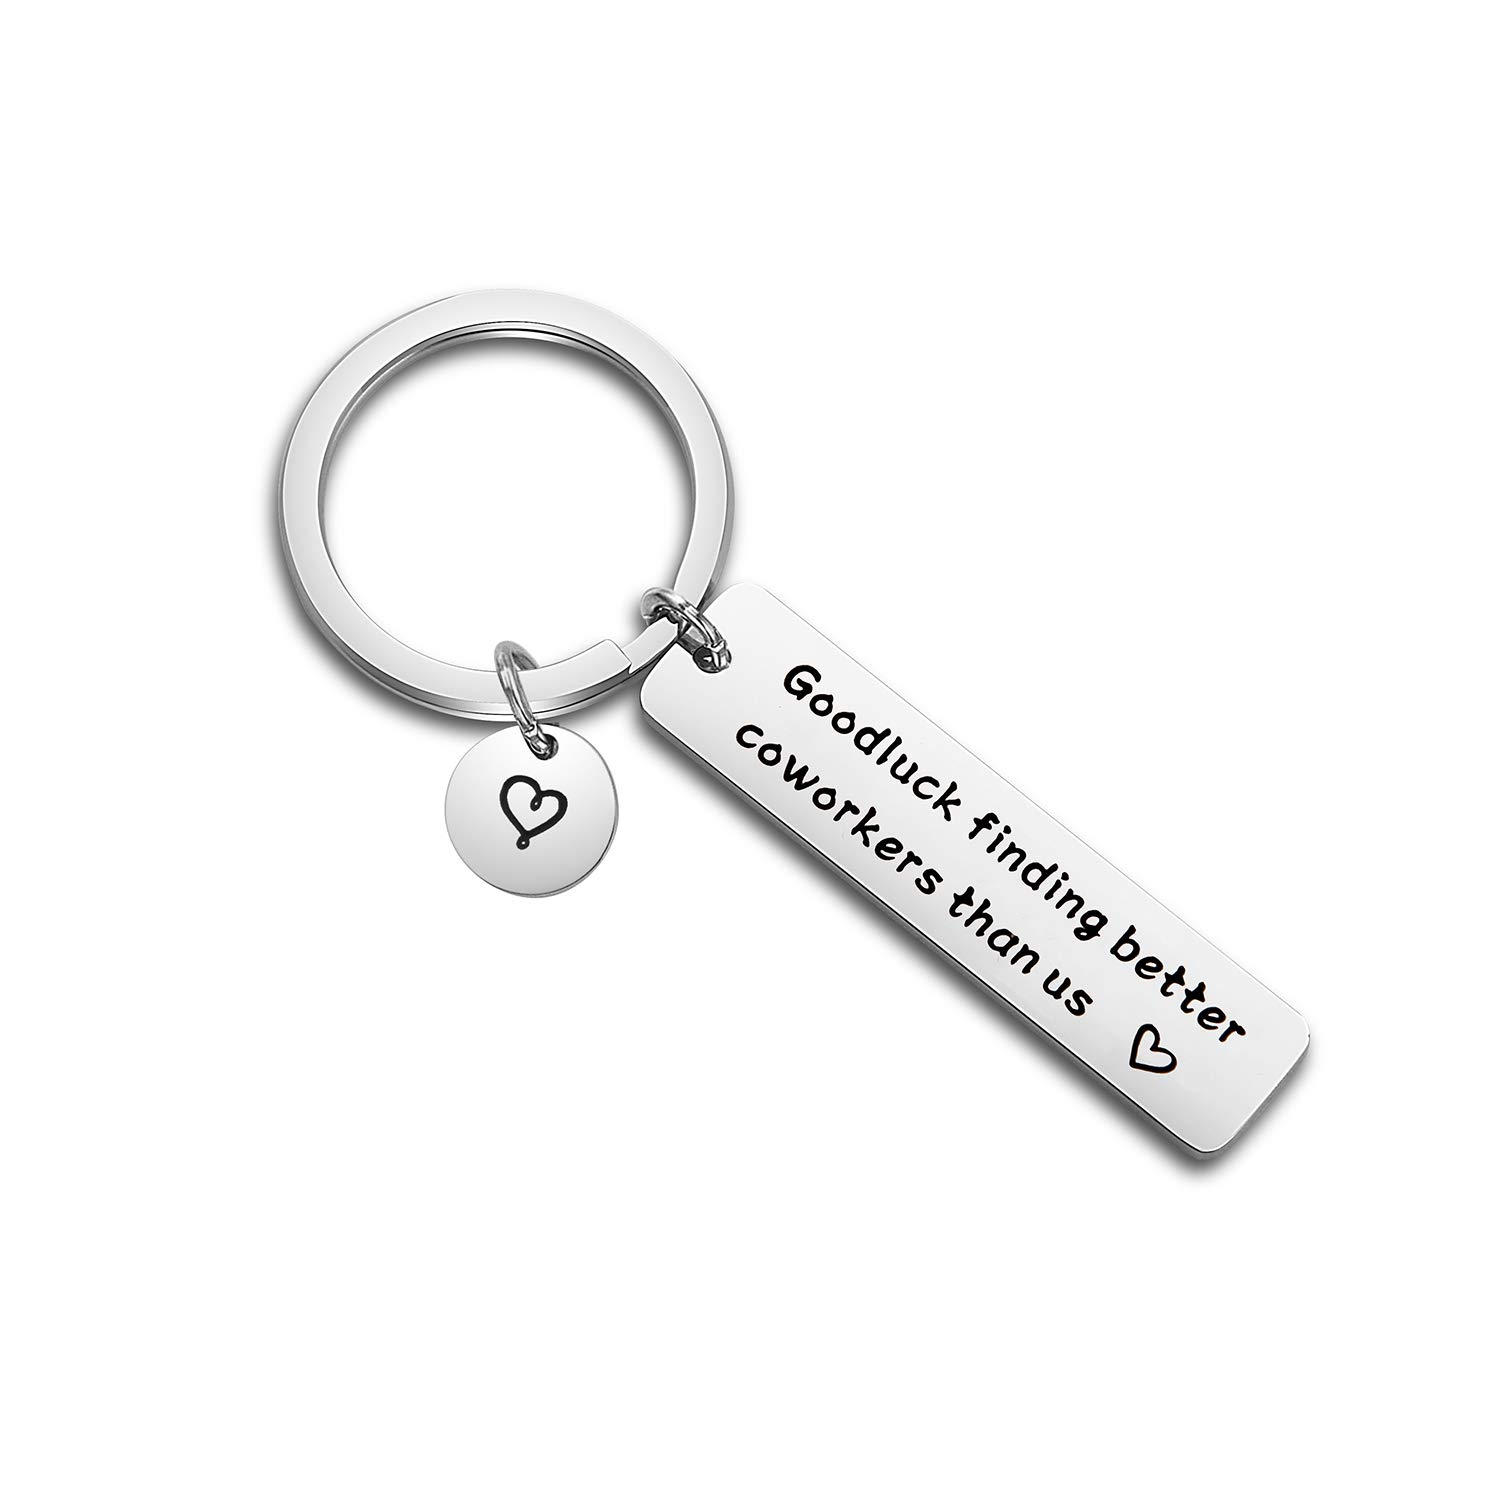 ENSIANTH Coworker Leaving Away Gift Coworker Retirement Keychain Goodbye Gift for Colleague (Coworker Keyring)